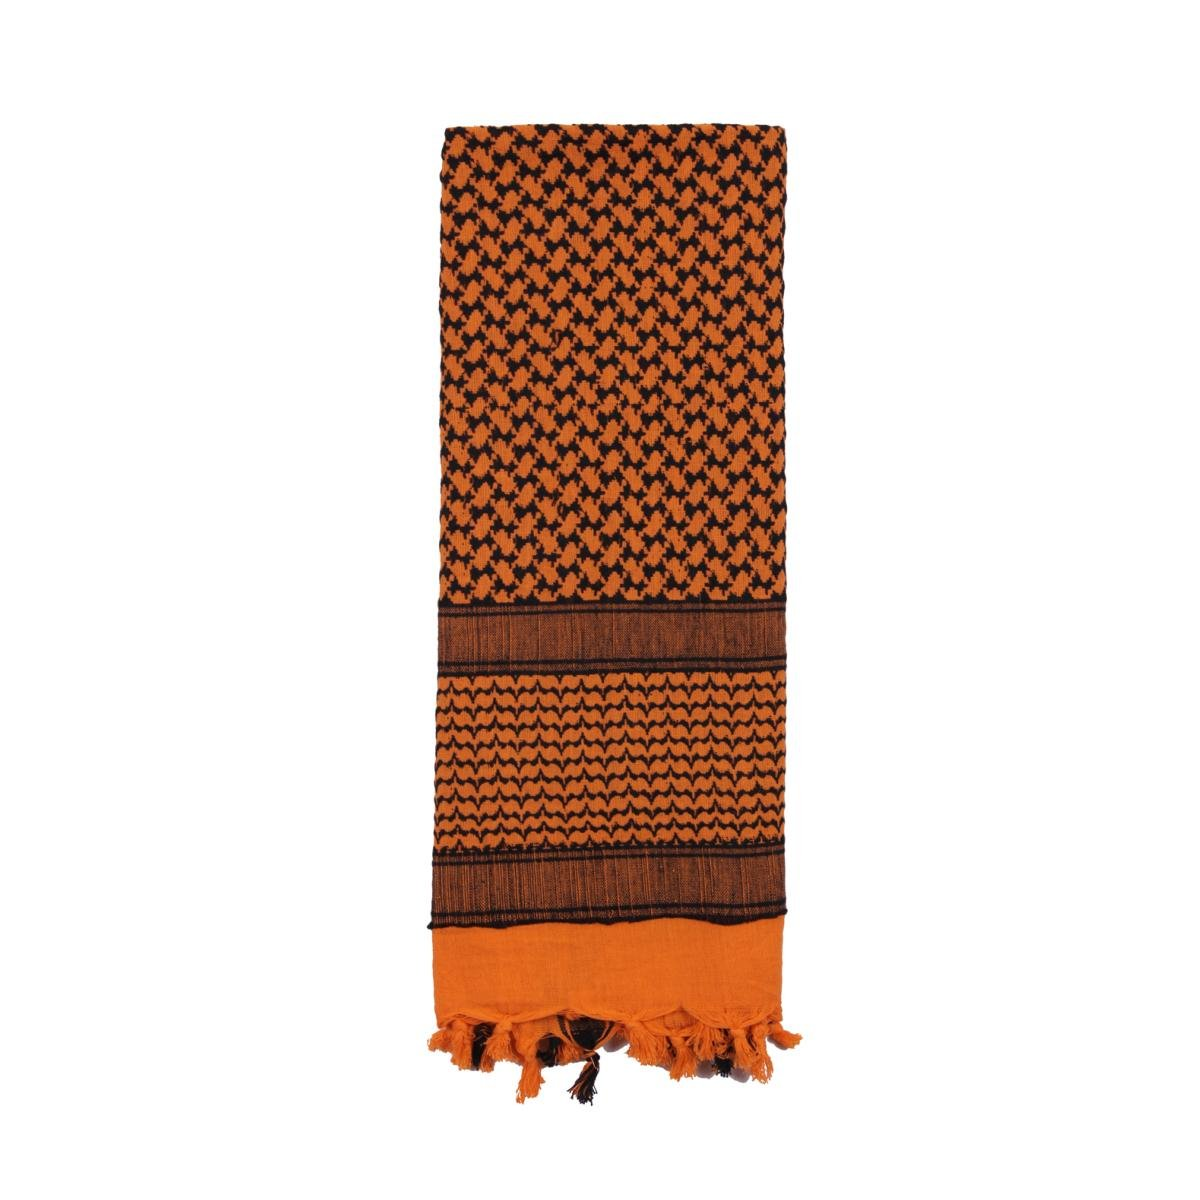 Rothco Shemagh Tactical Desert Scarf, Orange/Black